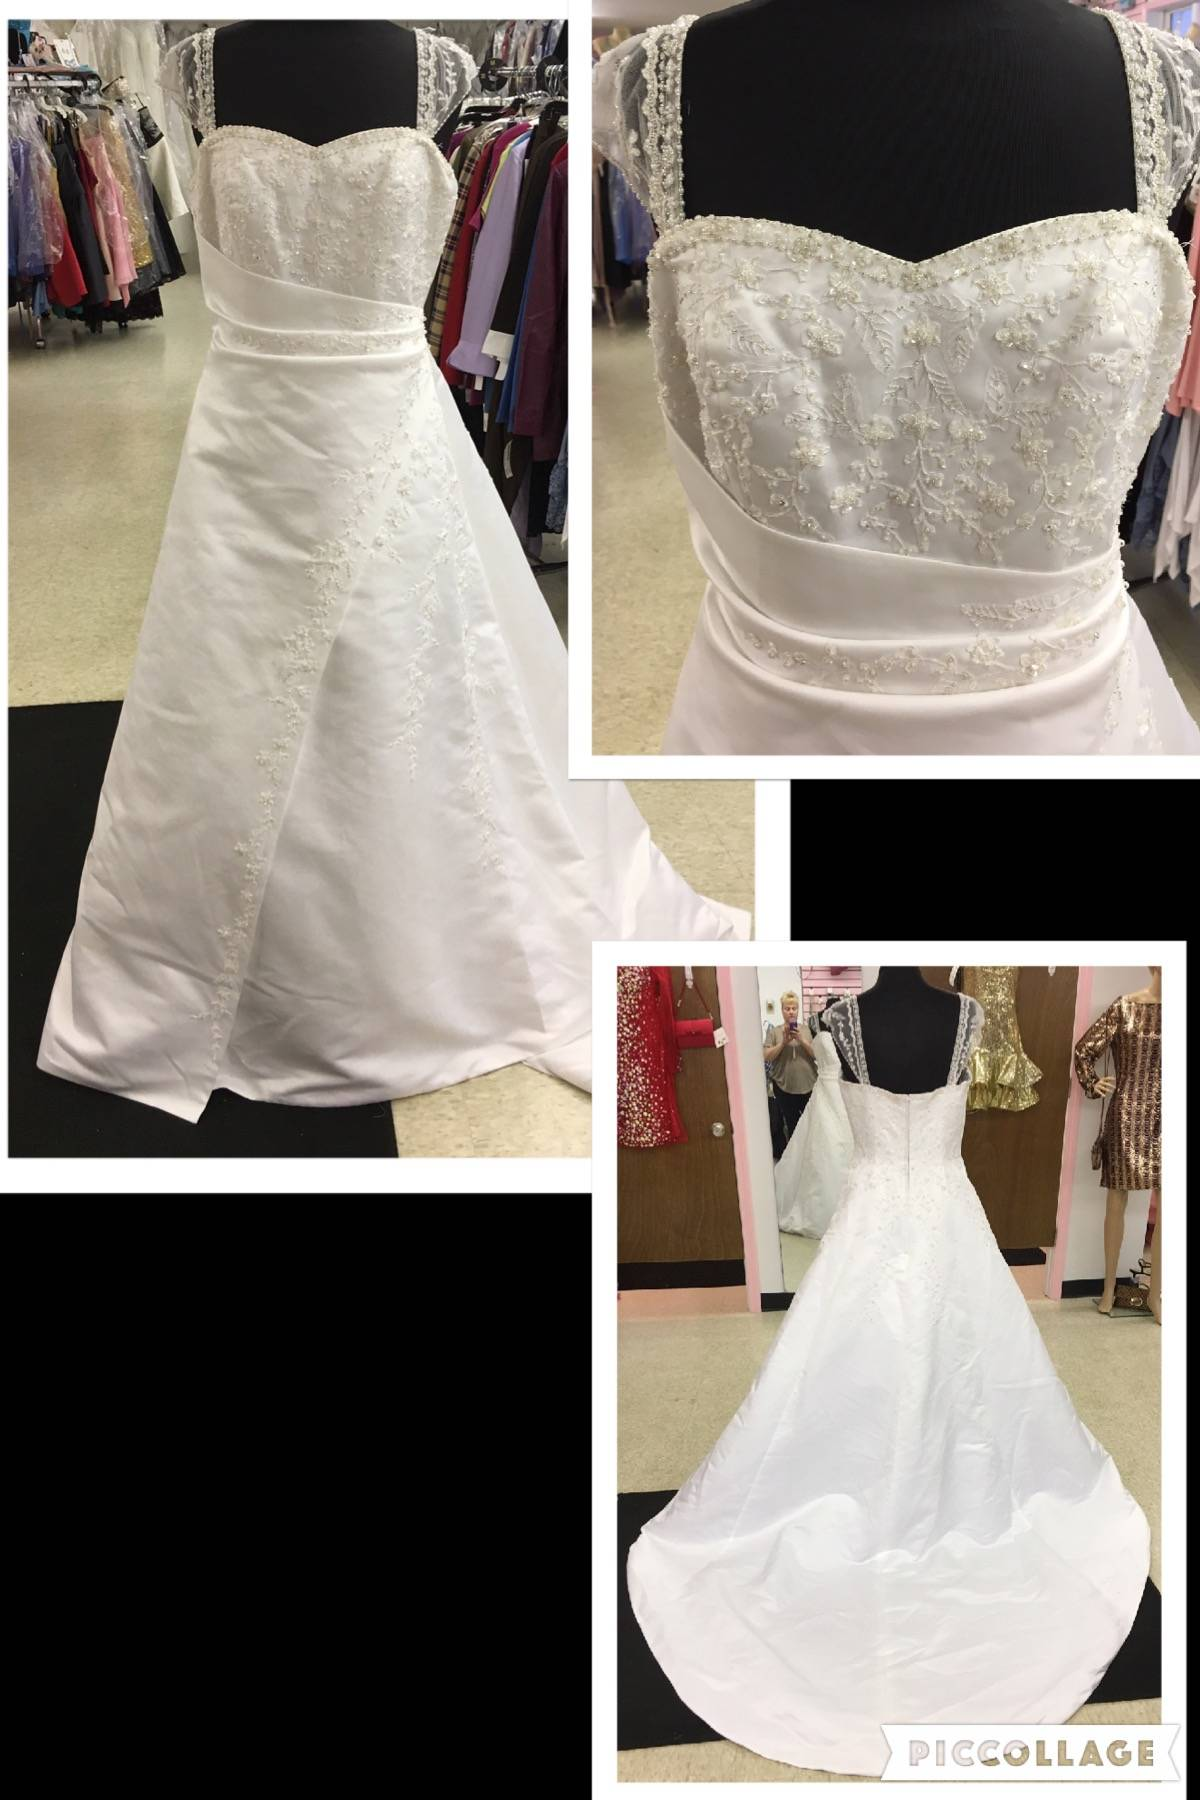 NWT SIZE 16 BRIDAL GOWN WEDDING GOWN $300.00